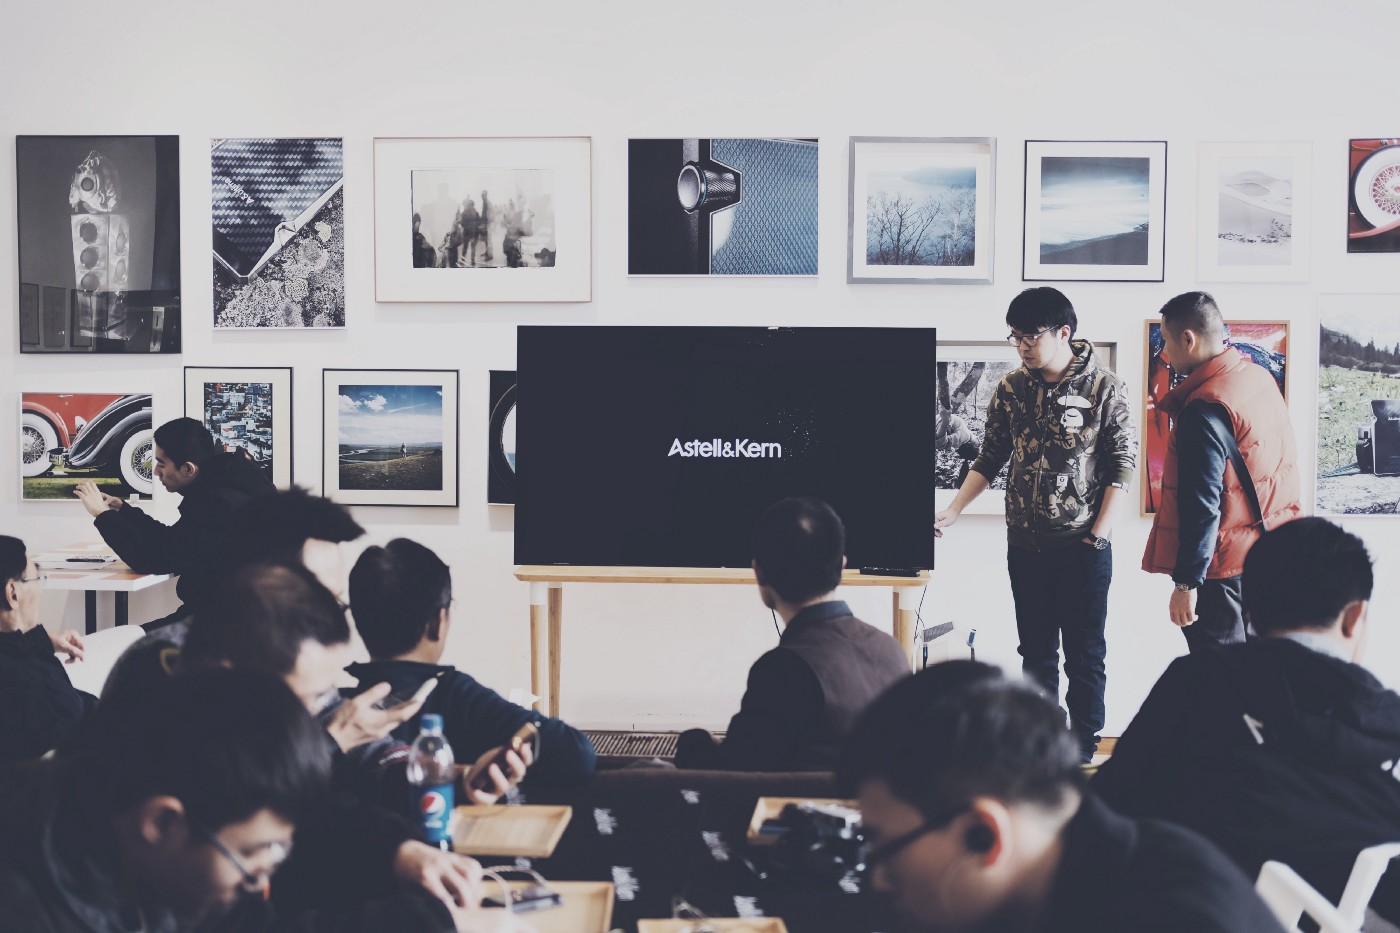 A duo gives a presentation to a crowd